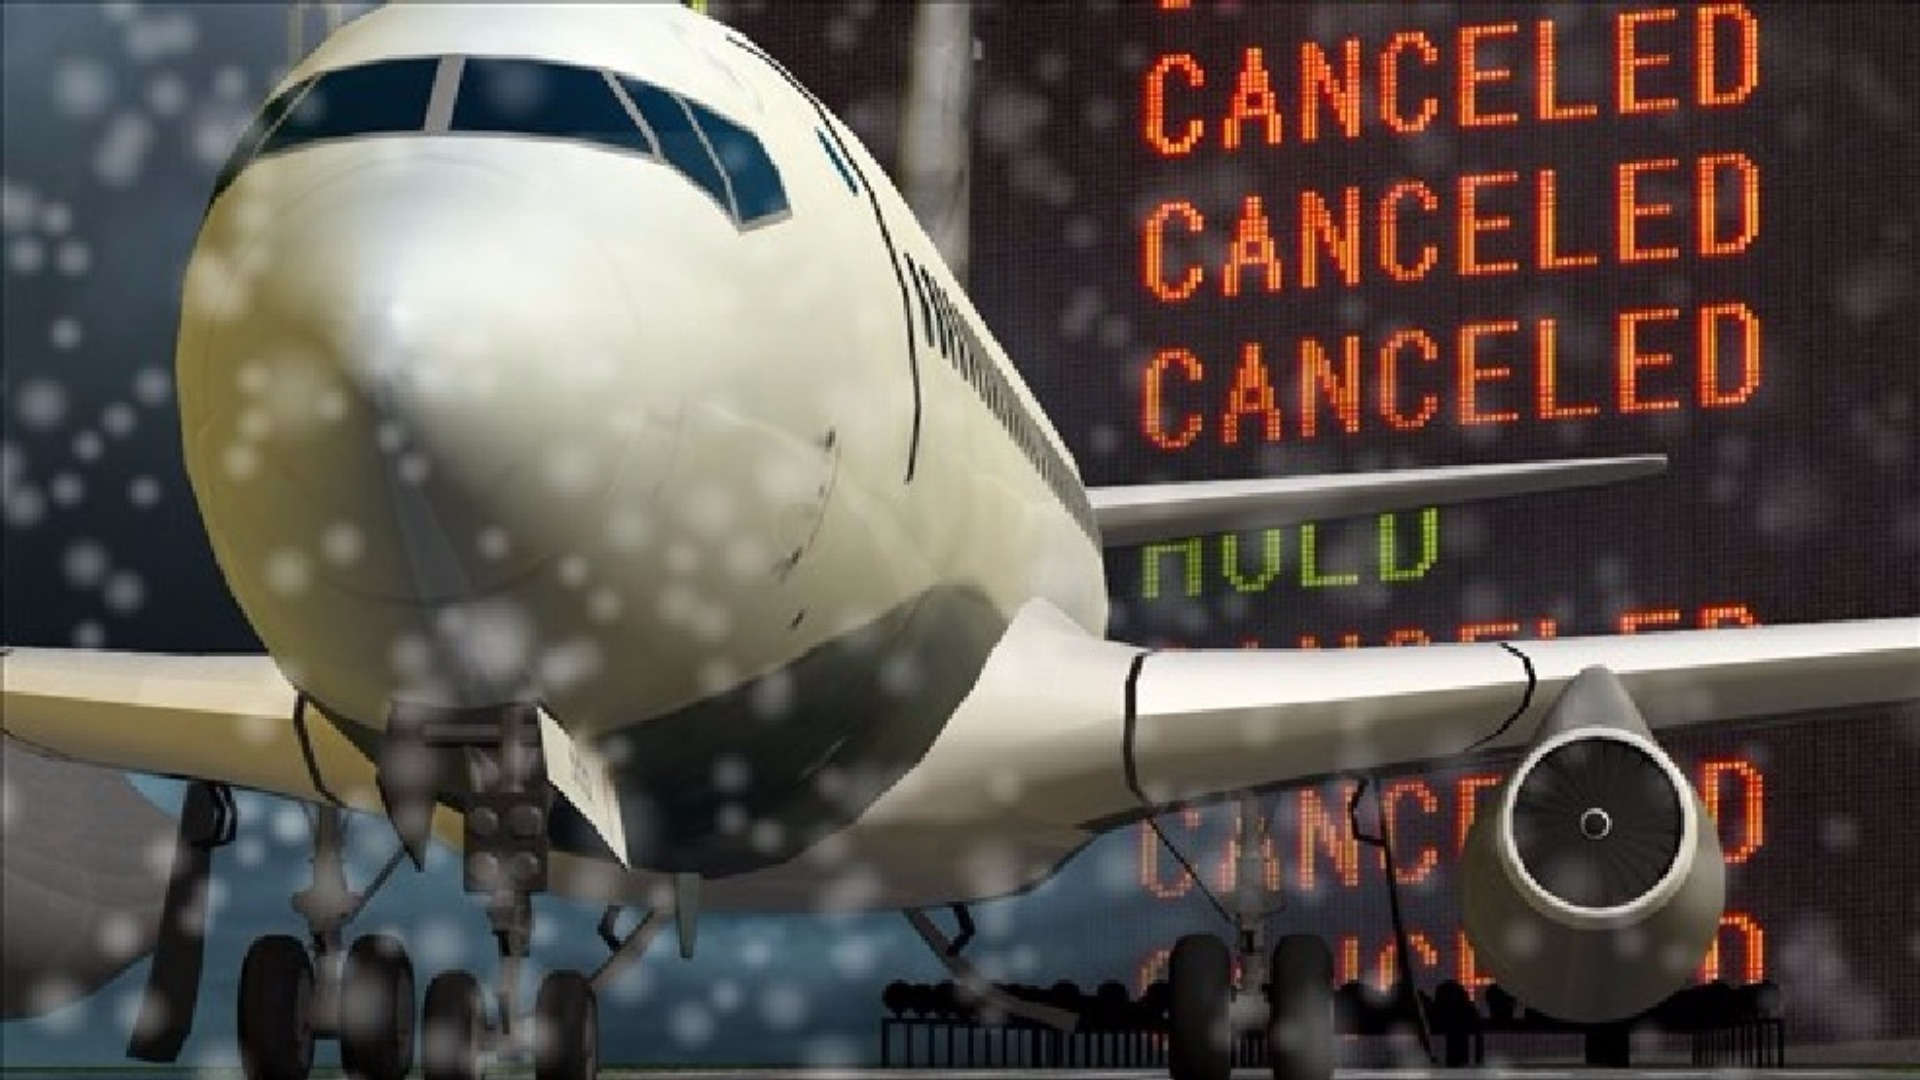 Blizzard grounds most flights in and out of New England